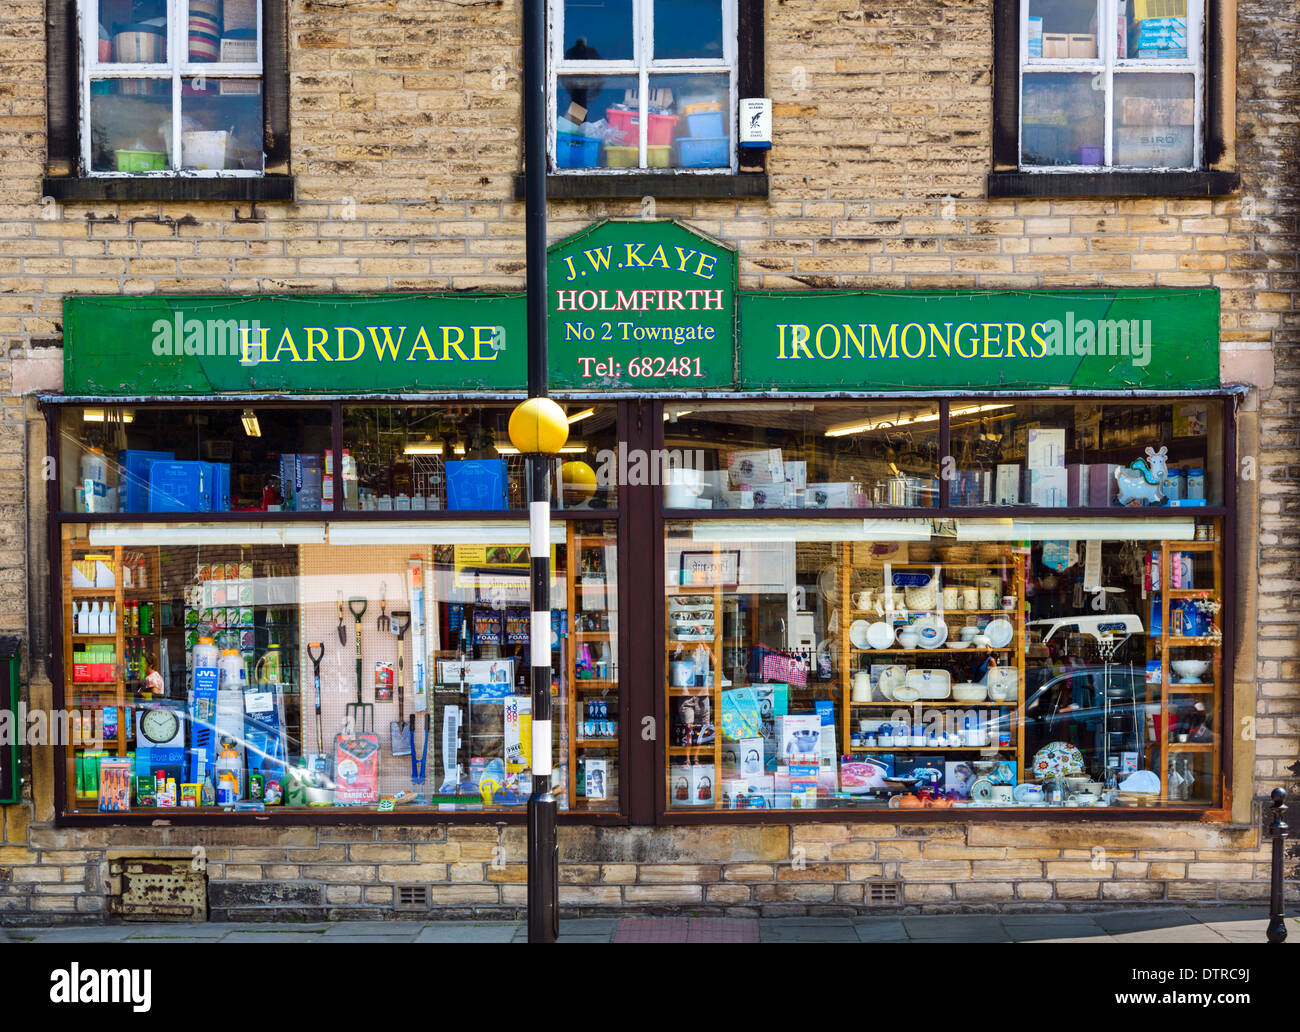 Traditional hardware store in the town centre, Holmfirth, West Yorkshire, England, UK - Stock Image